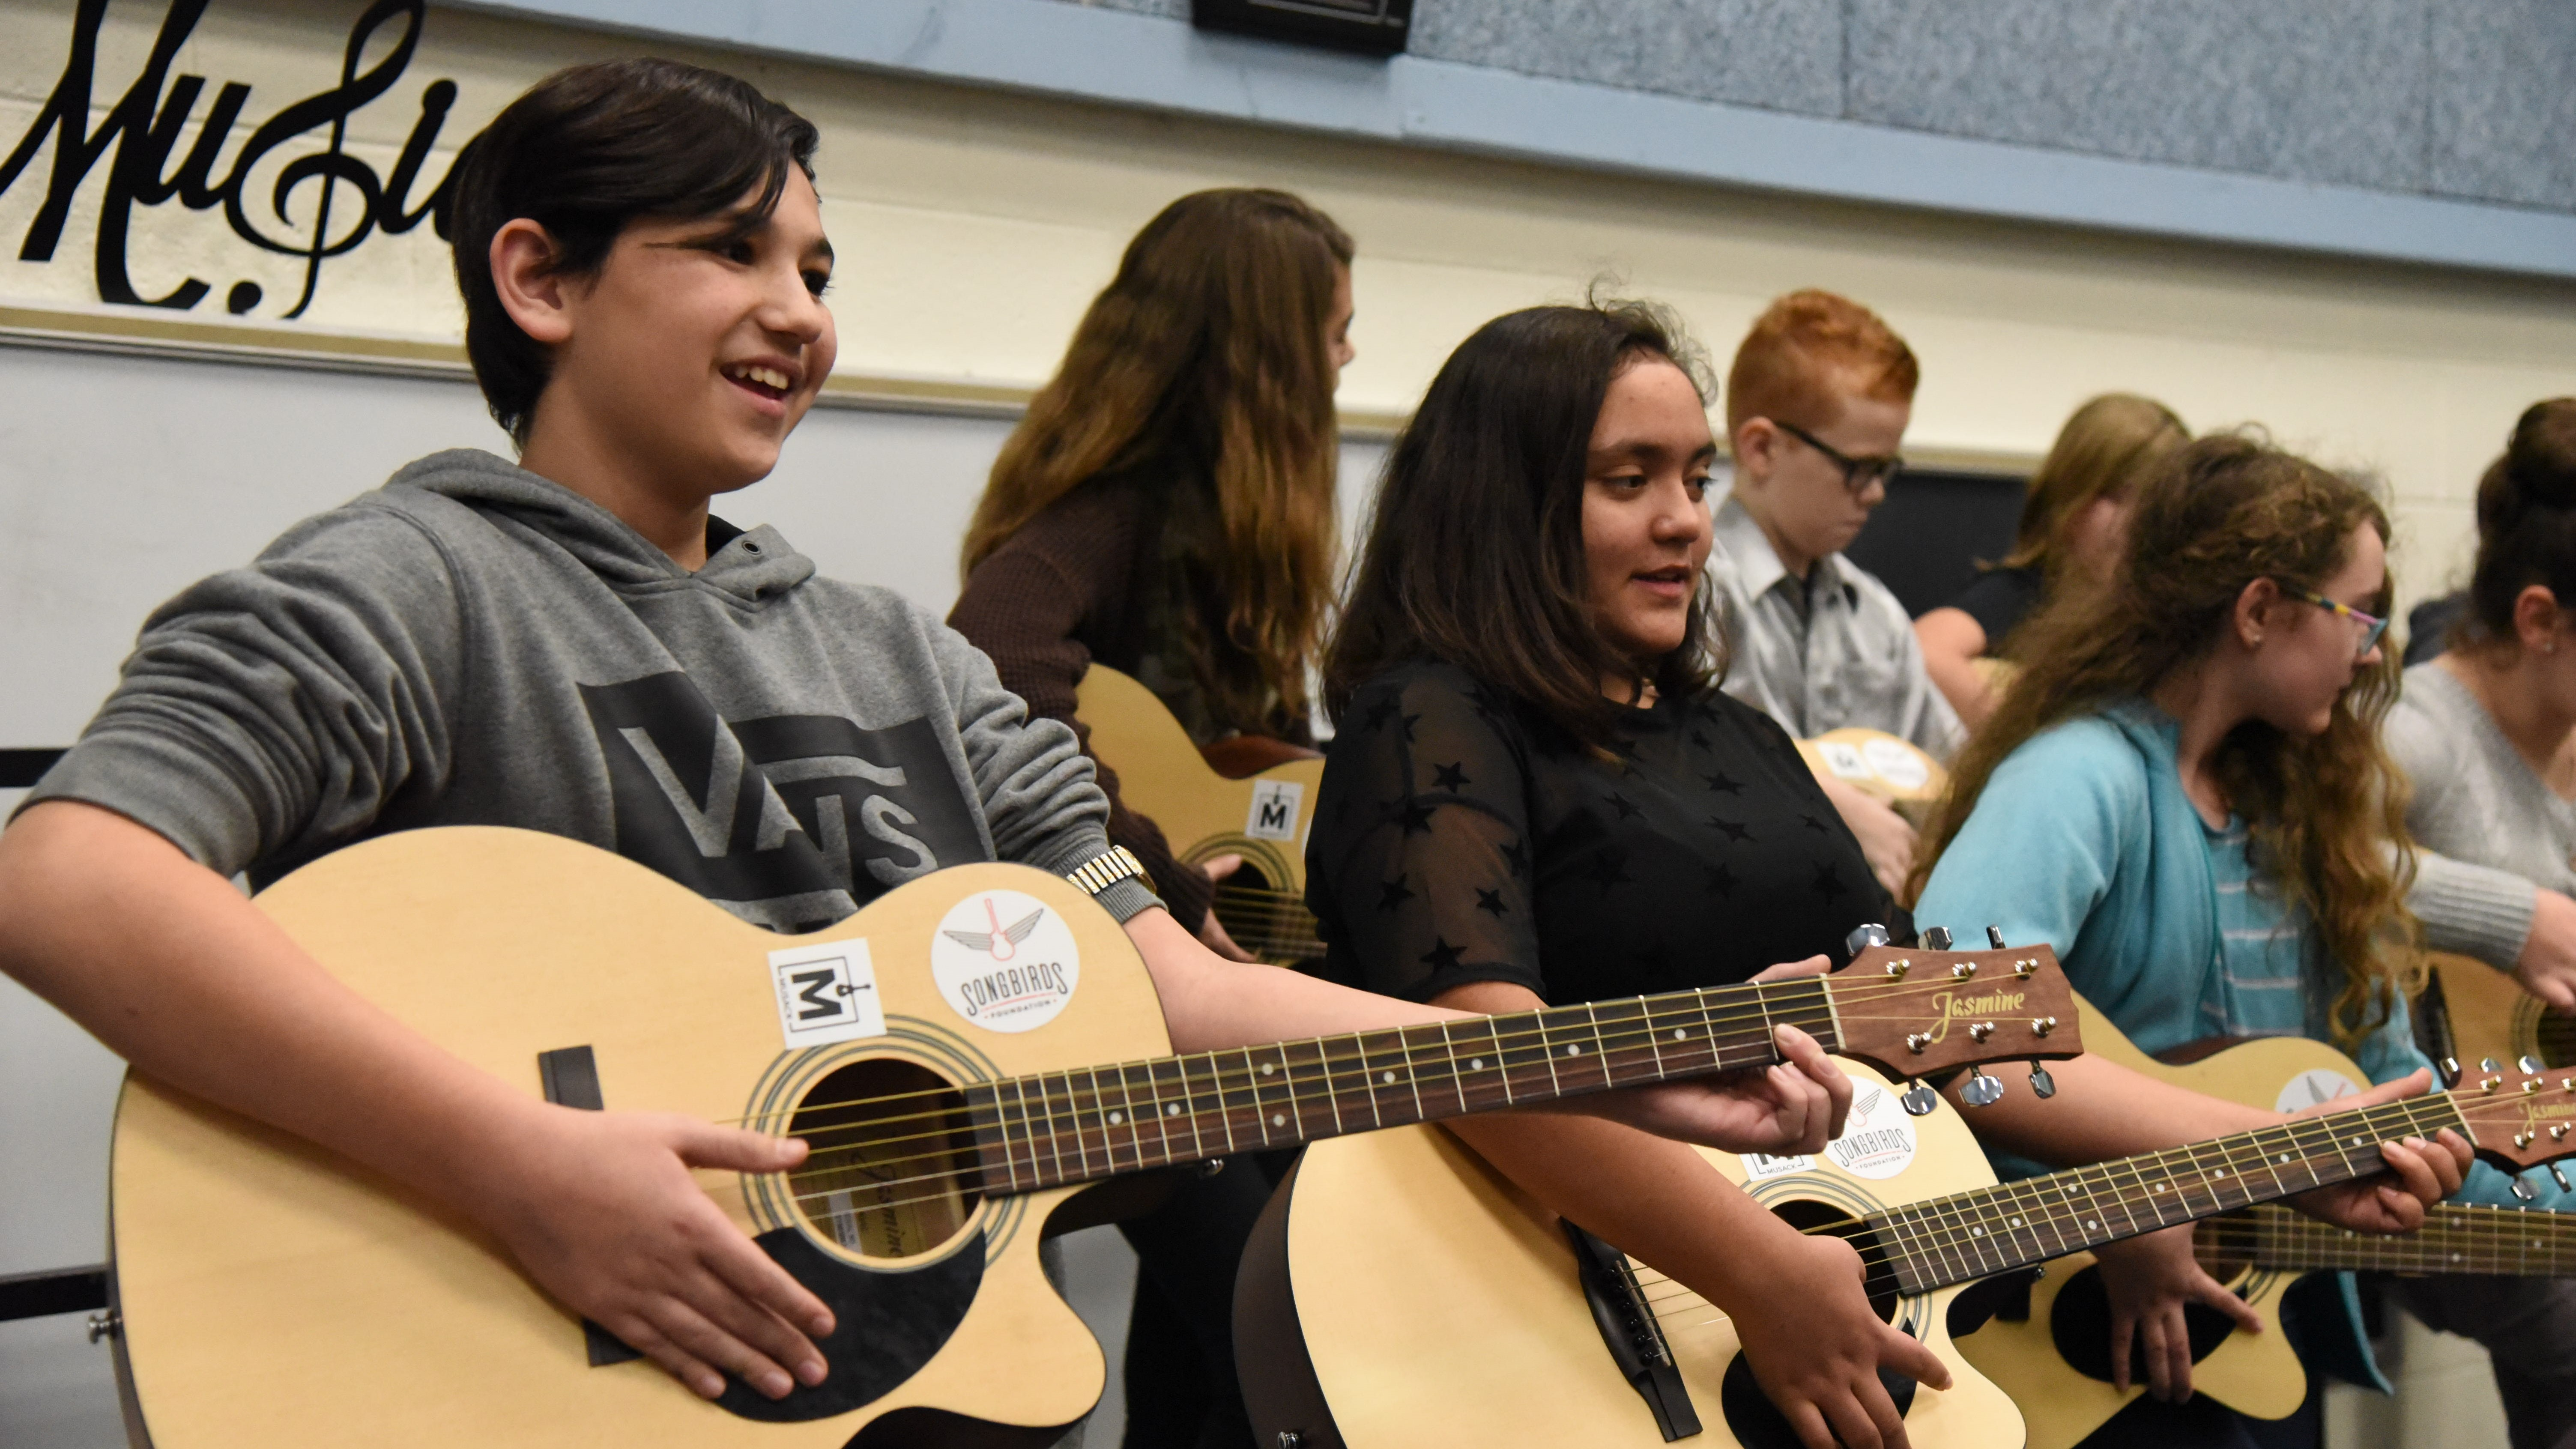 In September, the Songbirds Foundation provided 25 new guitars to Karns Middle School. Students from the school will perform at a benefit concert with Chris Blue on Dec. 19.